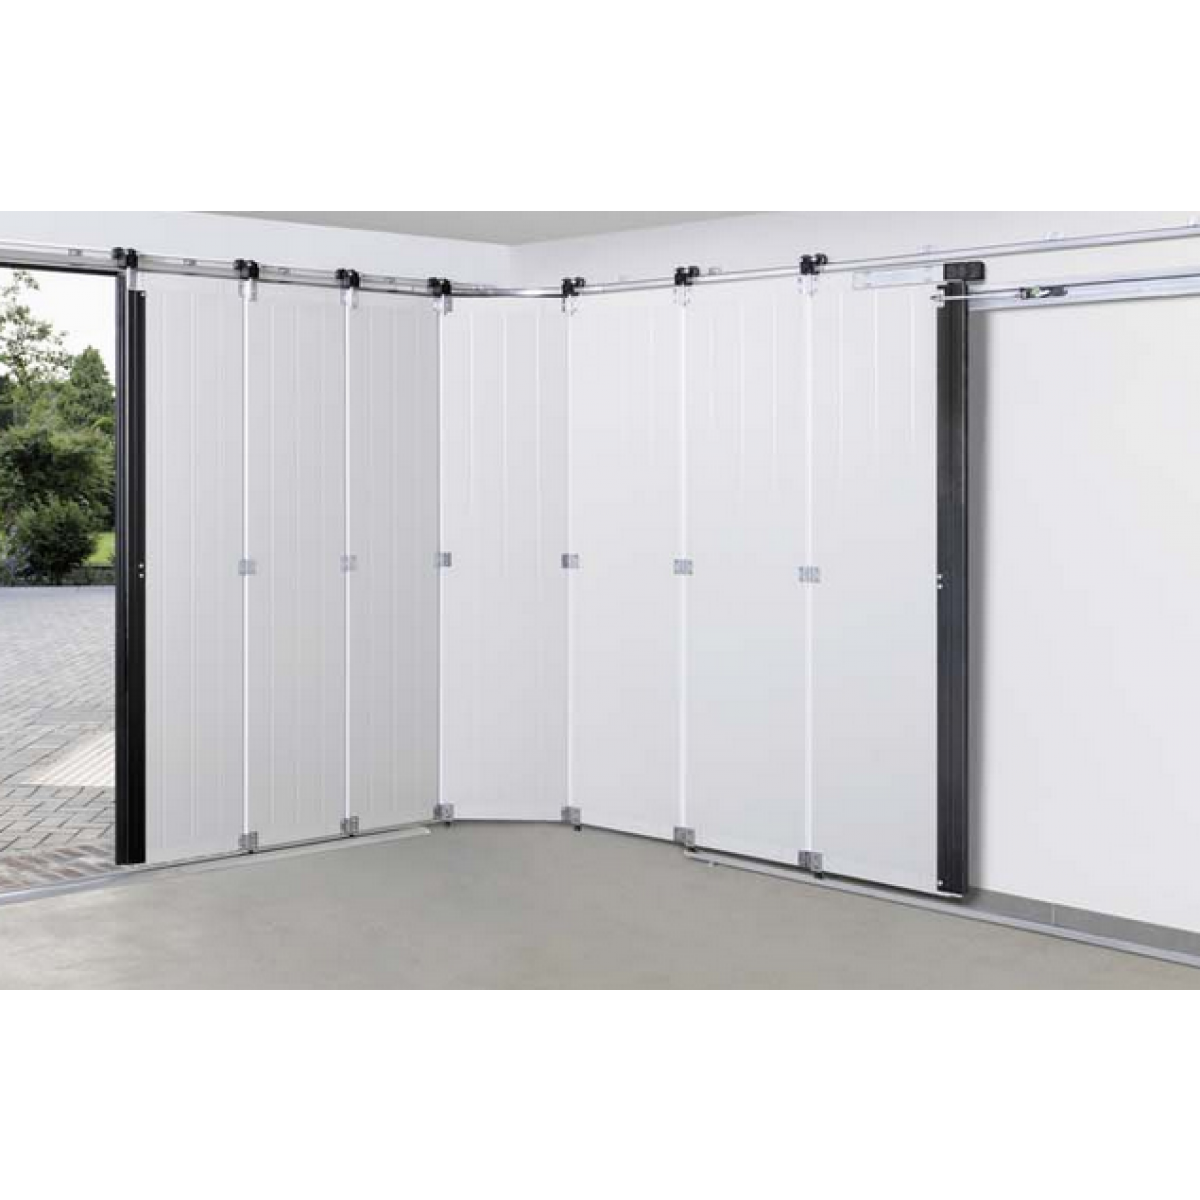 Porte lat rale de garage hst hormann portes de parking for Porte de garage industrielle hormann